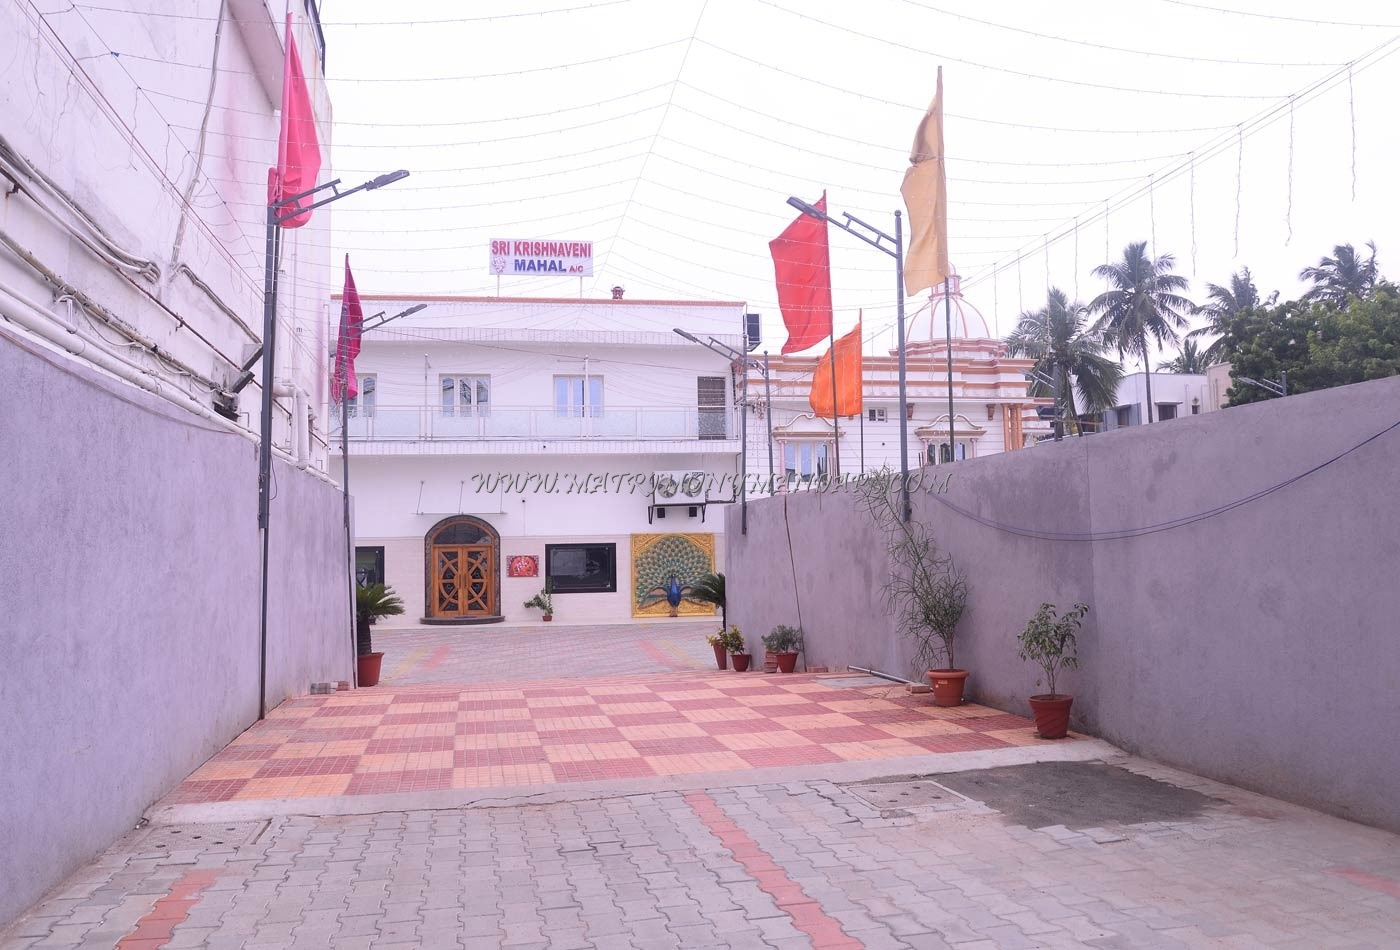 Find the availability of the Sri Krishnaveni Mahal  (A/C) in Porur, Chennai and avail special offers